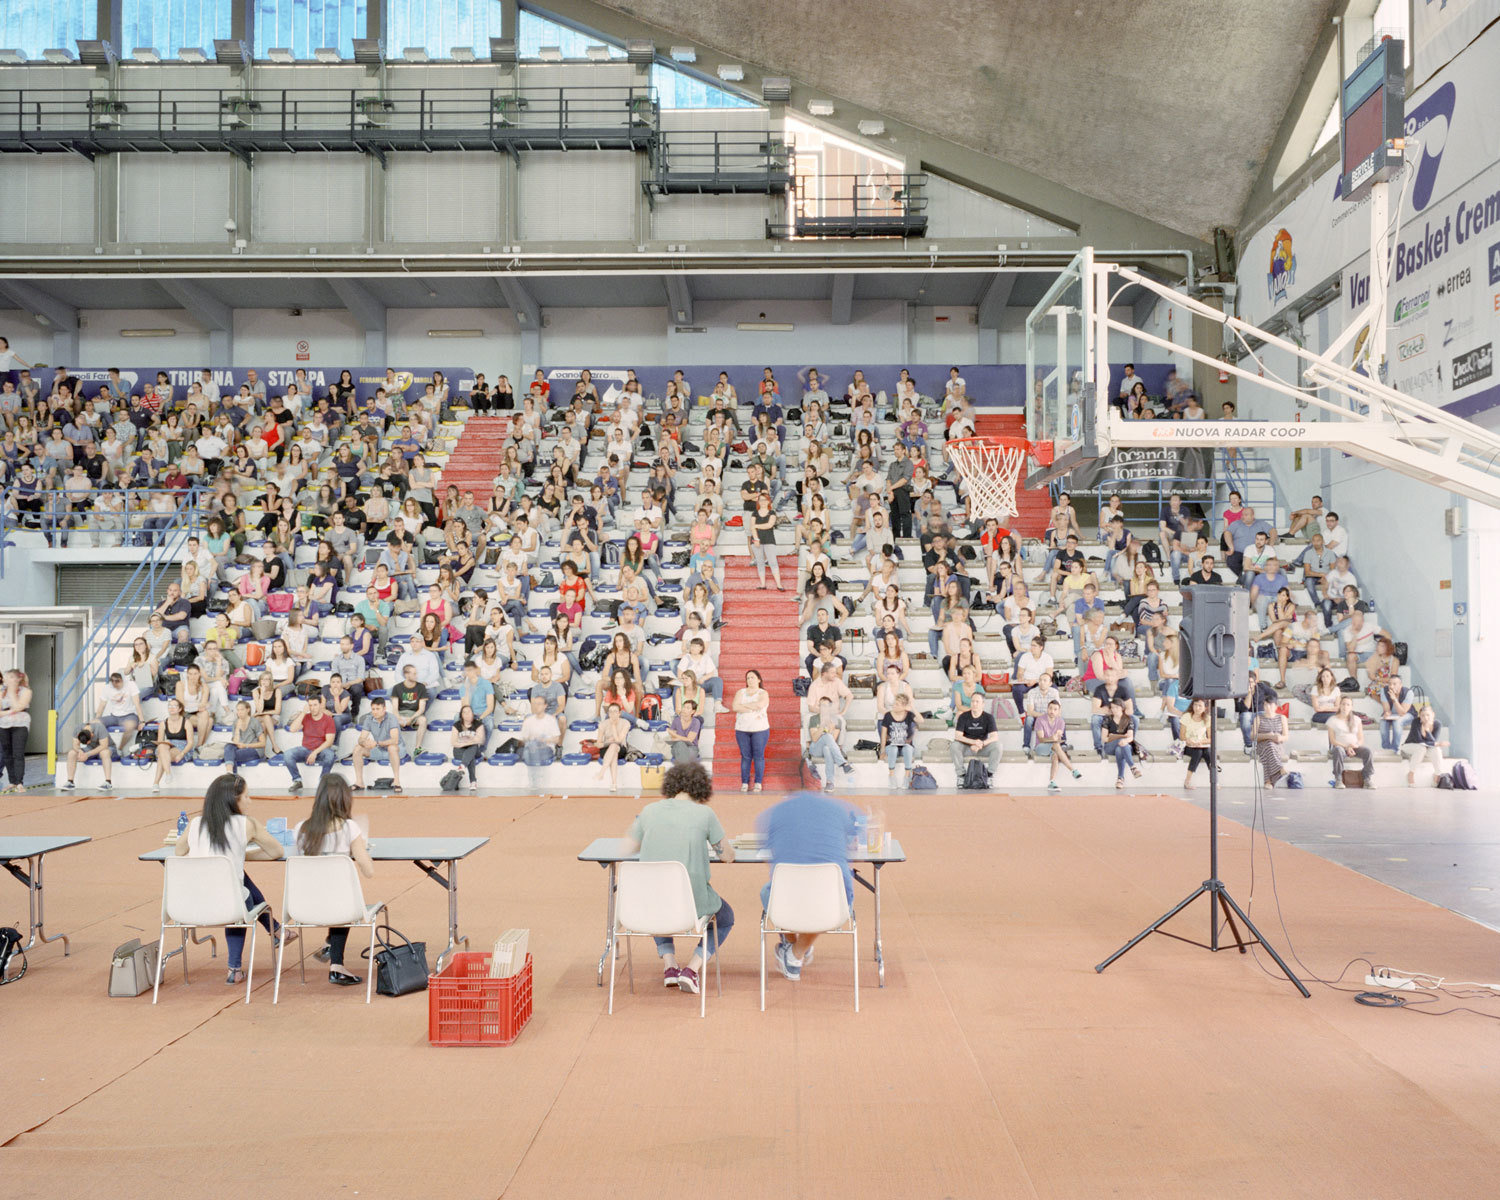 2015, Palasport Mario Radi, Cremona, Michele Borzoni, Audiovisual Library of the European Commission, CC BY-NC-ND